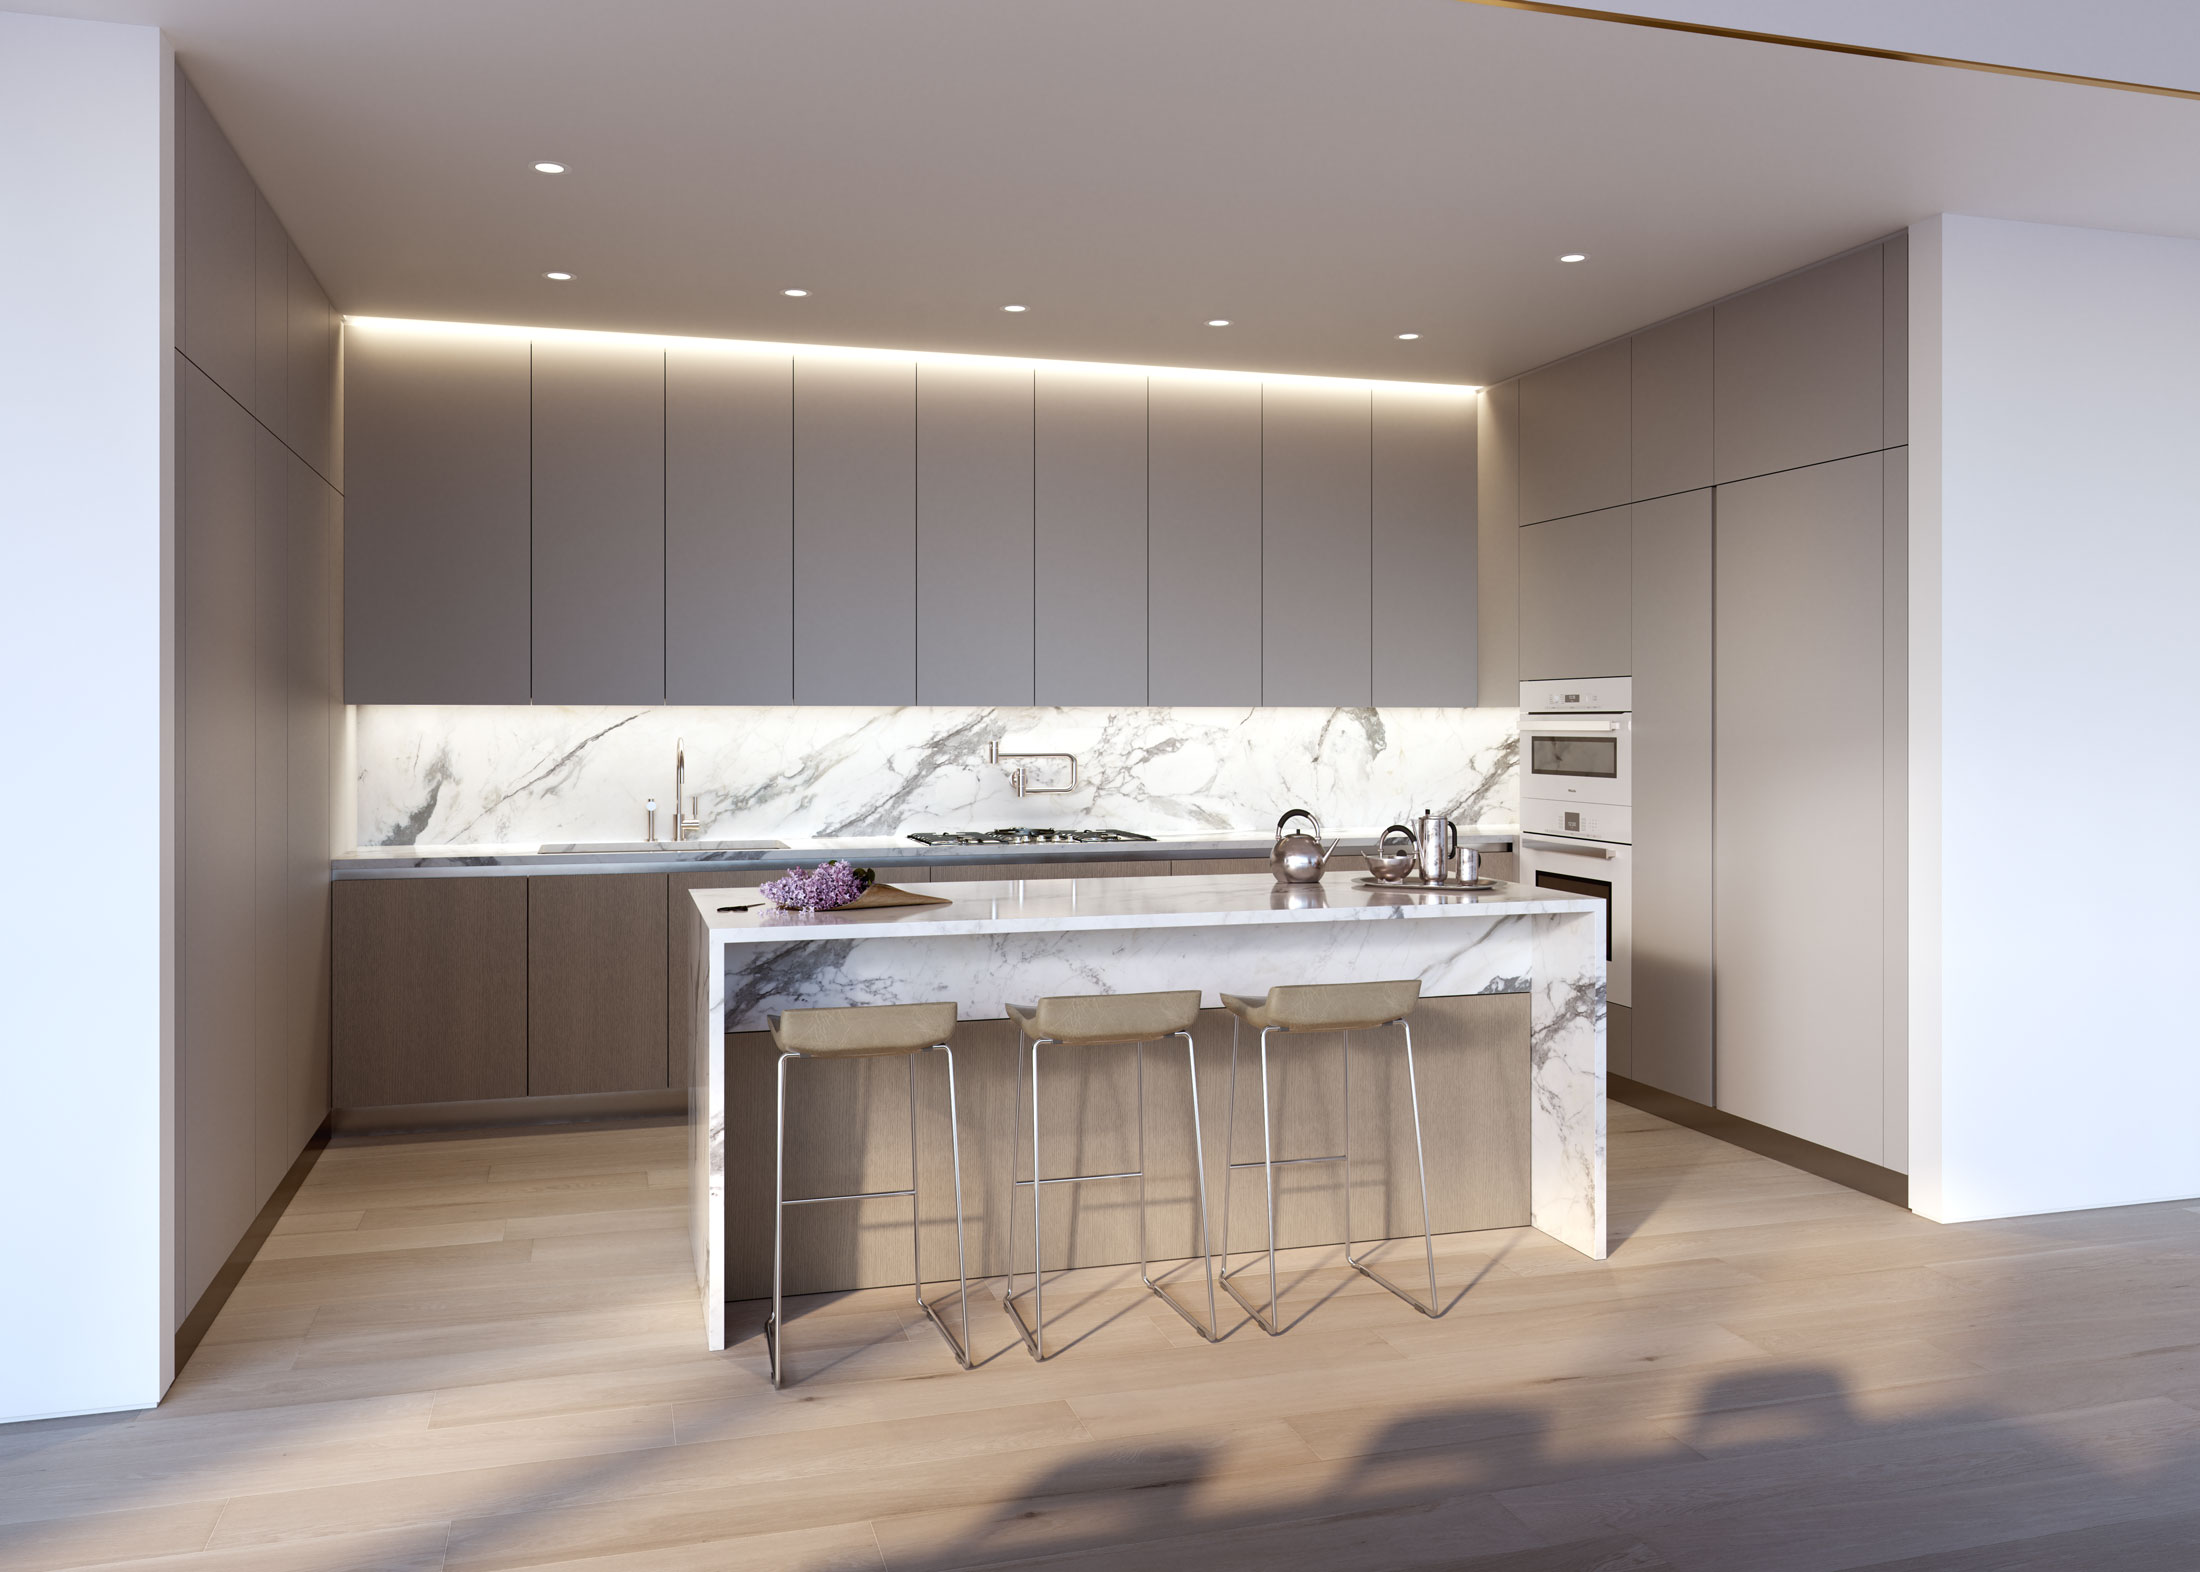 Architectural Rendering of the kitchen of the 80 East 10th Street project located in Greenwich Village in New York City